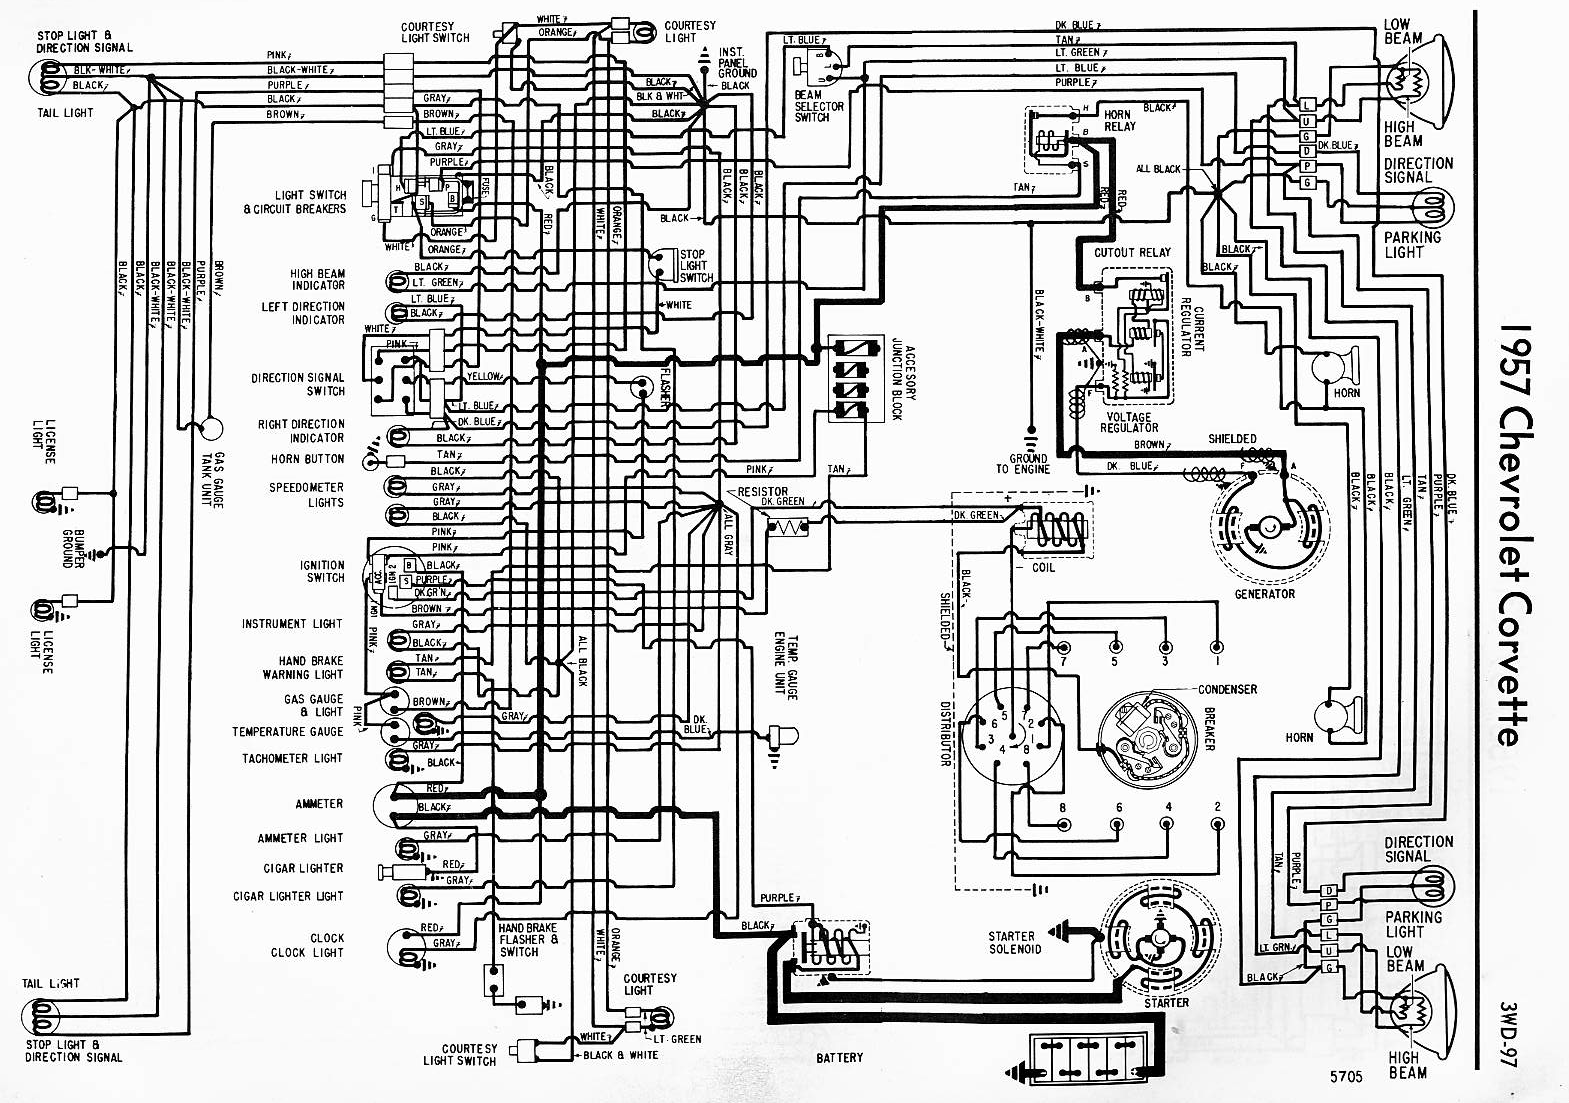 1957 corvette wiring diagram willcox corvette inc rh repairs willcoxcorvette com 1956 Chevy Truck Wiring Diagram 1985 Corvette Wiring Schematic